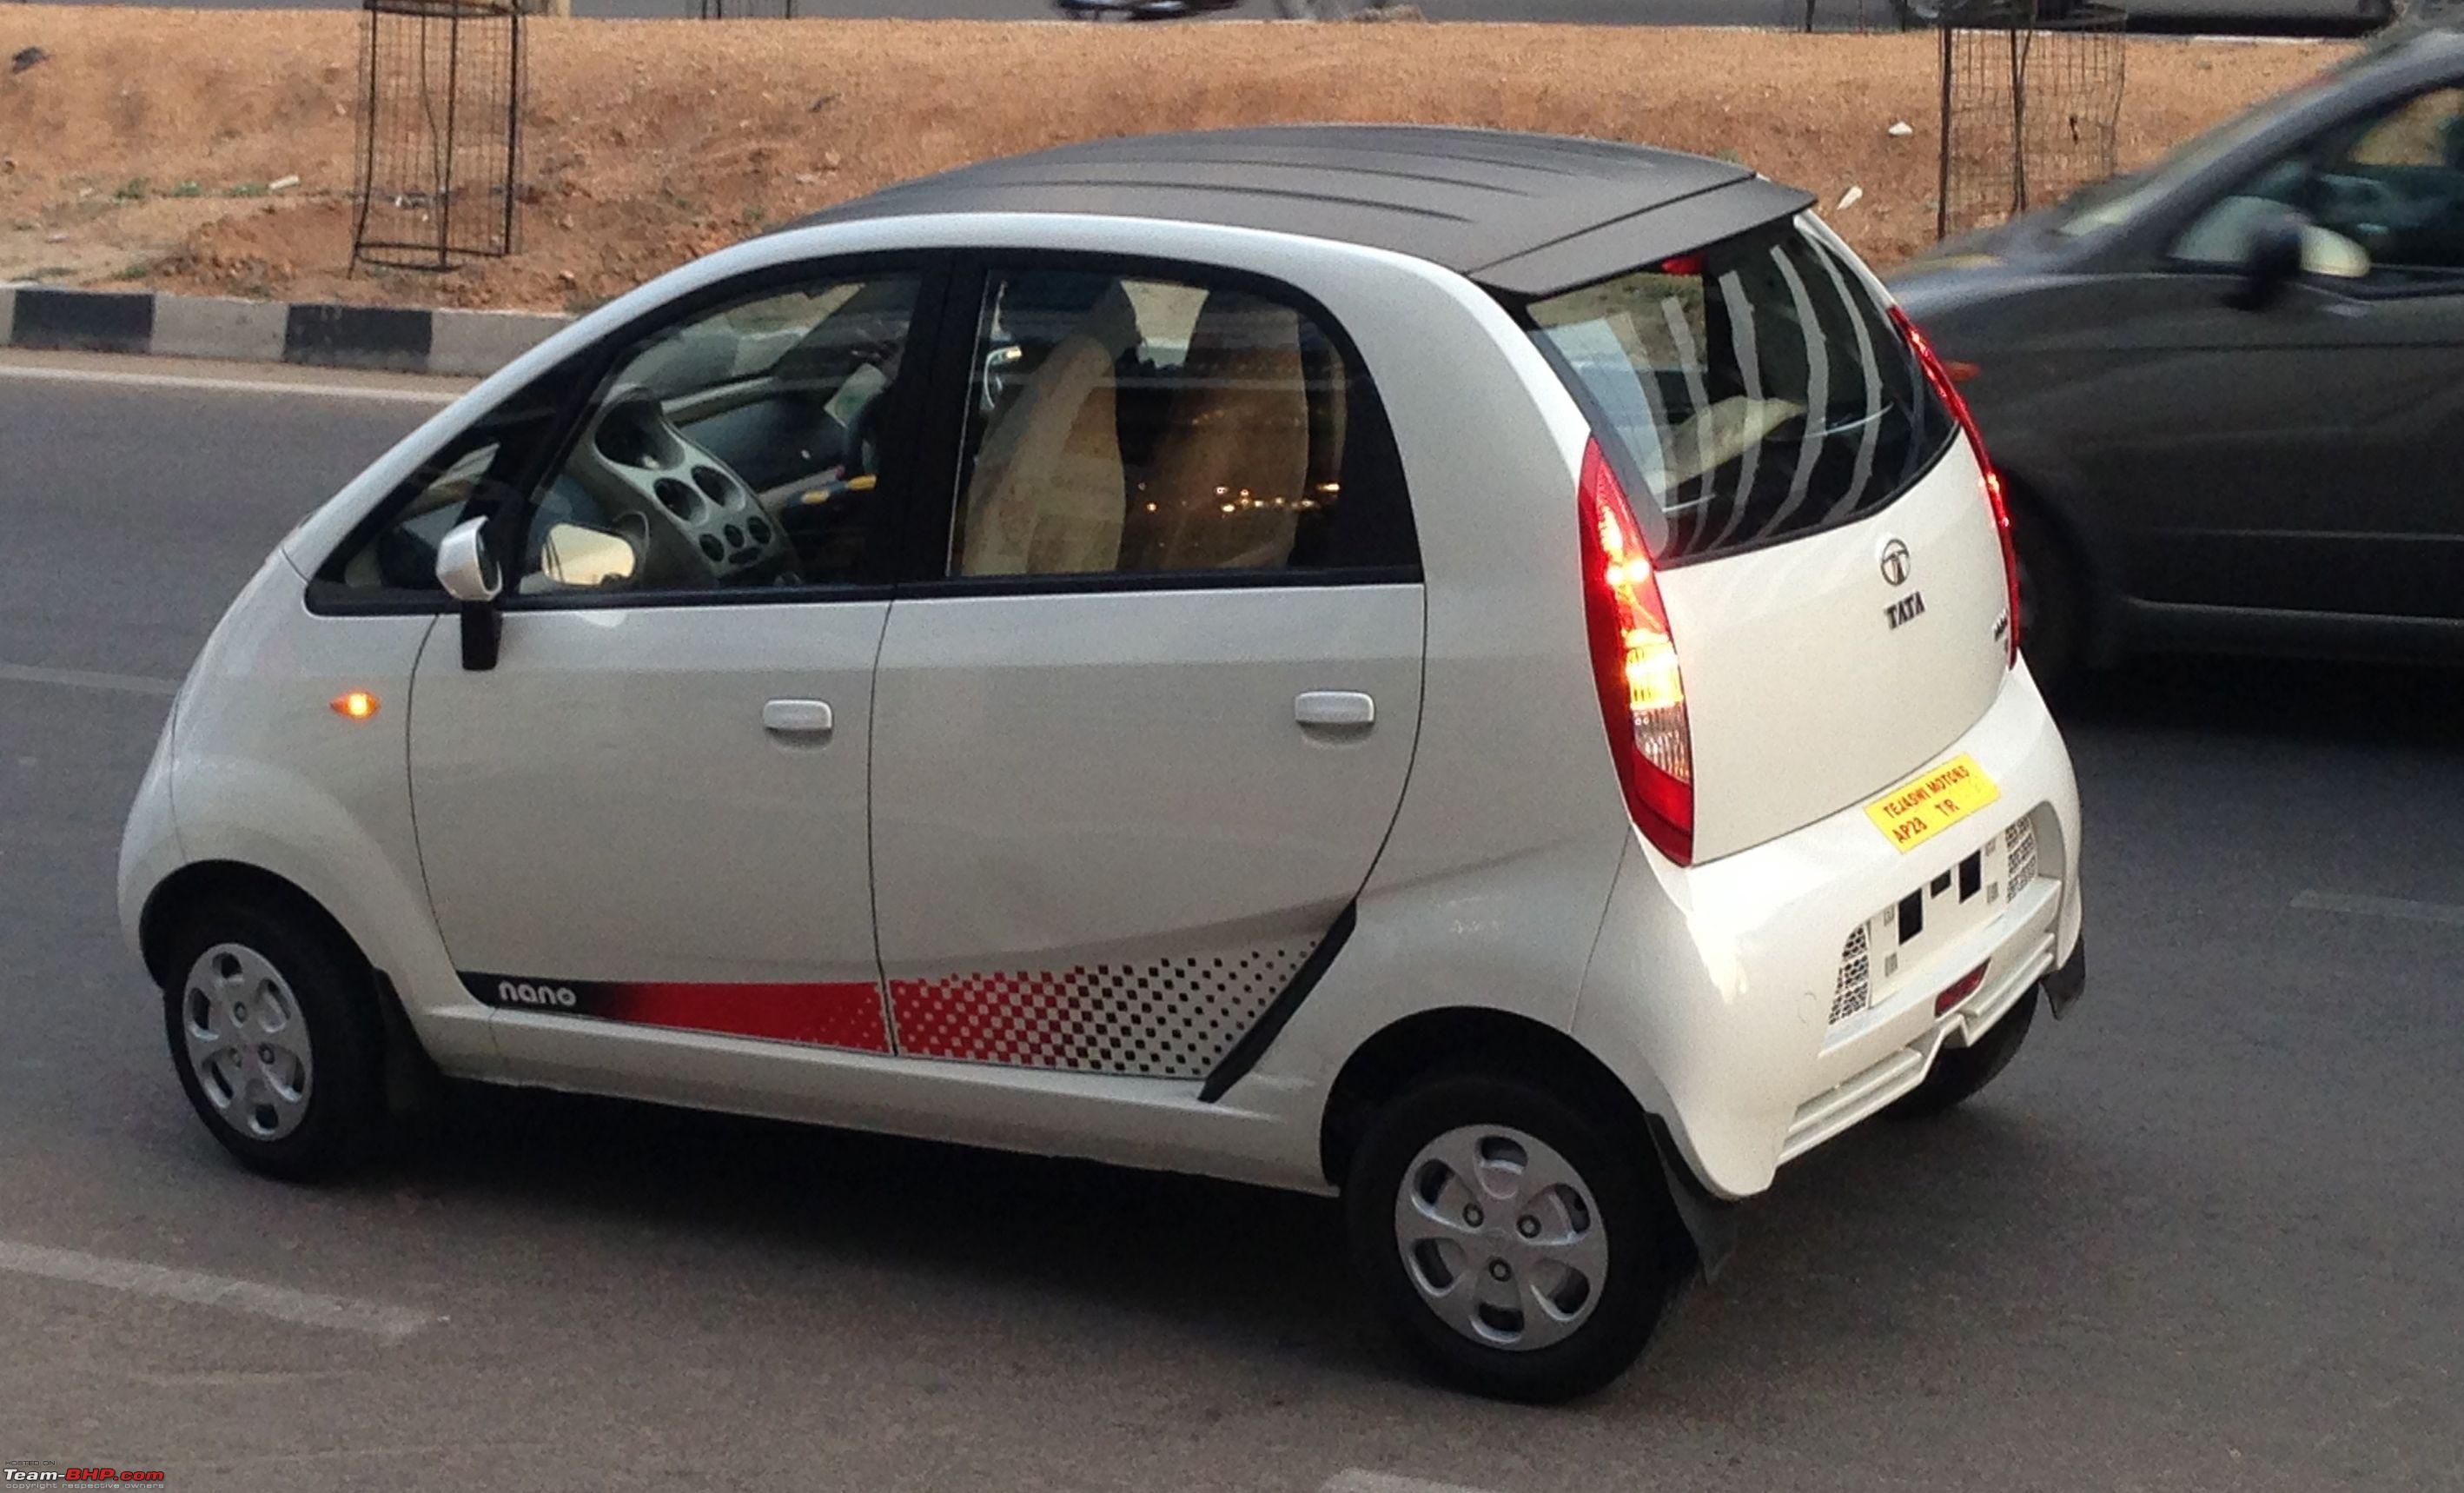 Tata Nano is the Cheapest Car of World Still Low on Trade